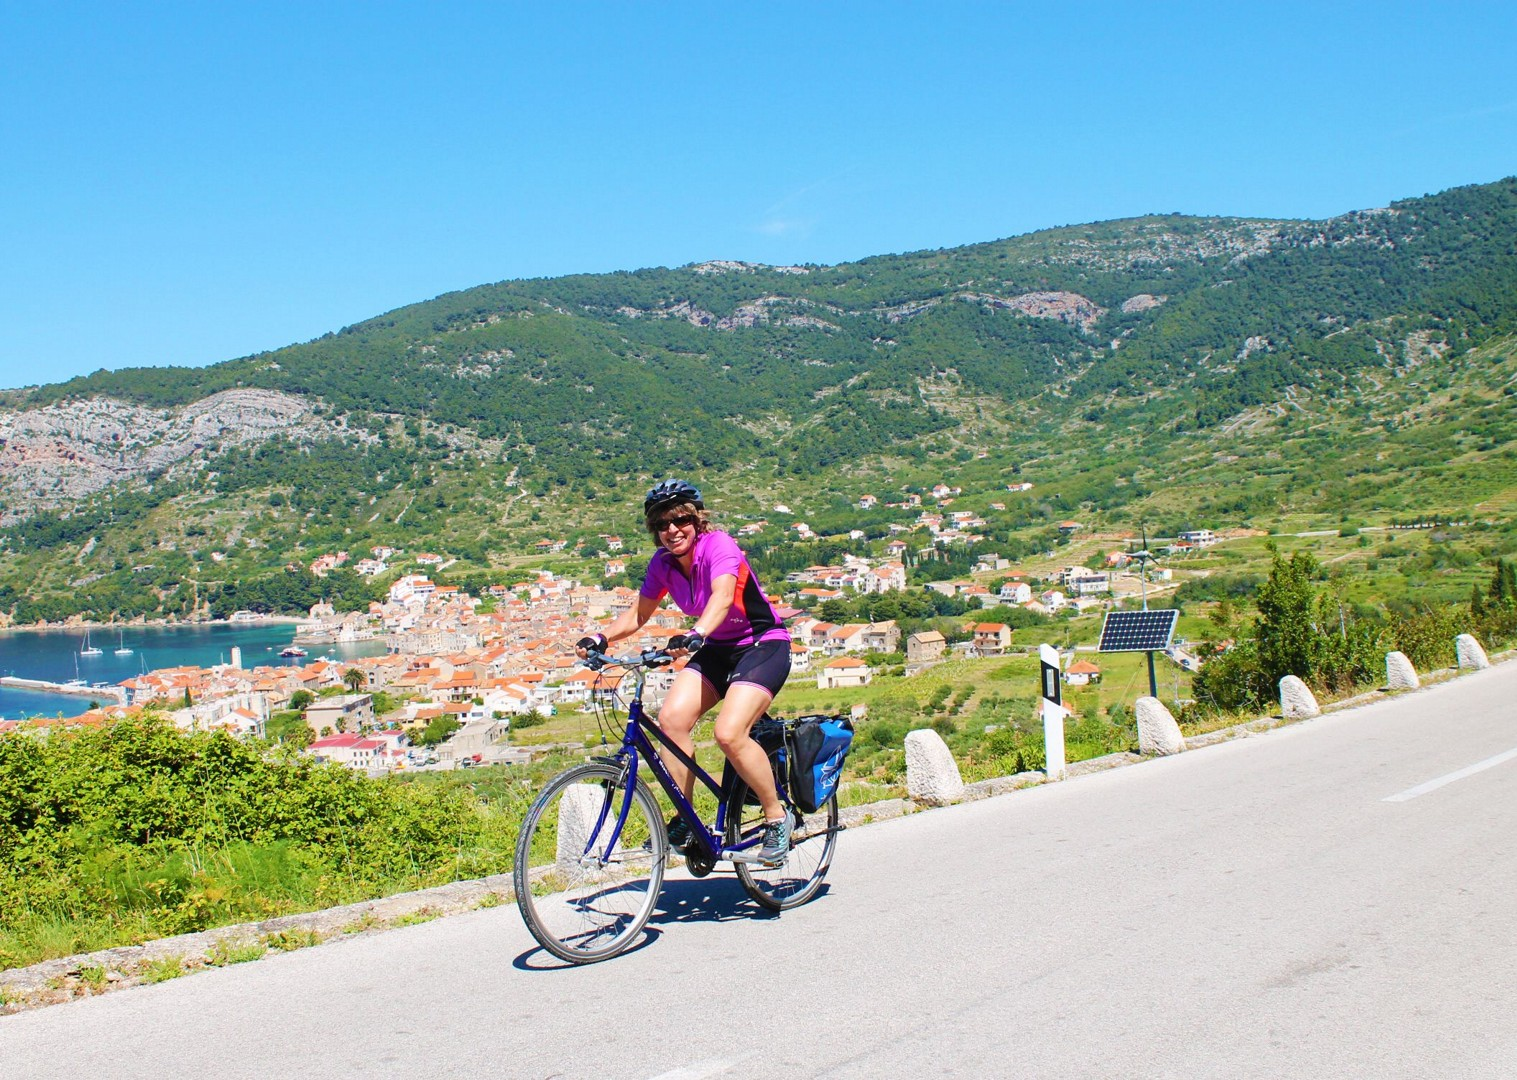 cycle-through-southern-dalmatia.jpg - Croatia - Southern Dalmatia - Bike and Boat Holiday - Leisure Cycling